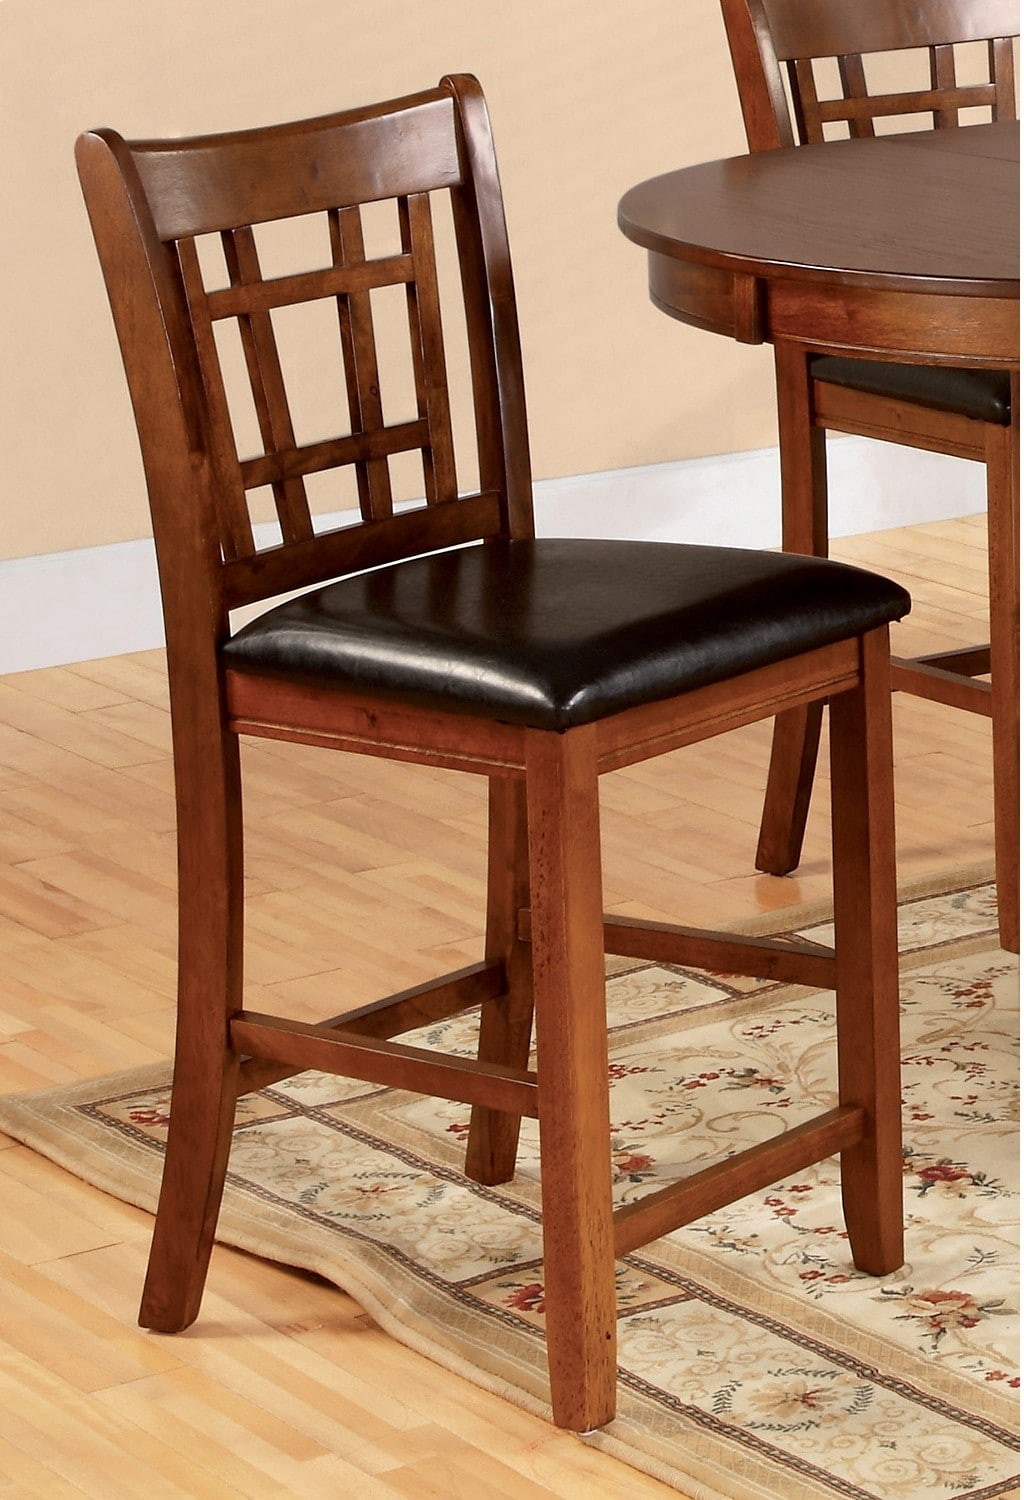 Dining Room Furniture - Dalton Oak Counter-Height Chair